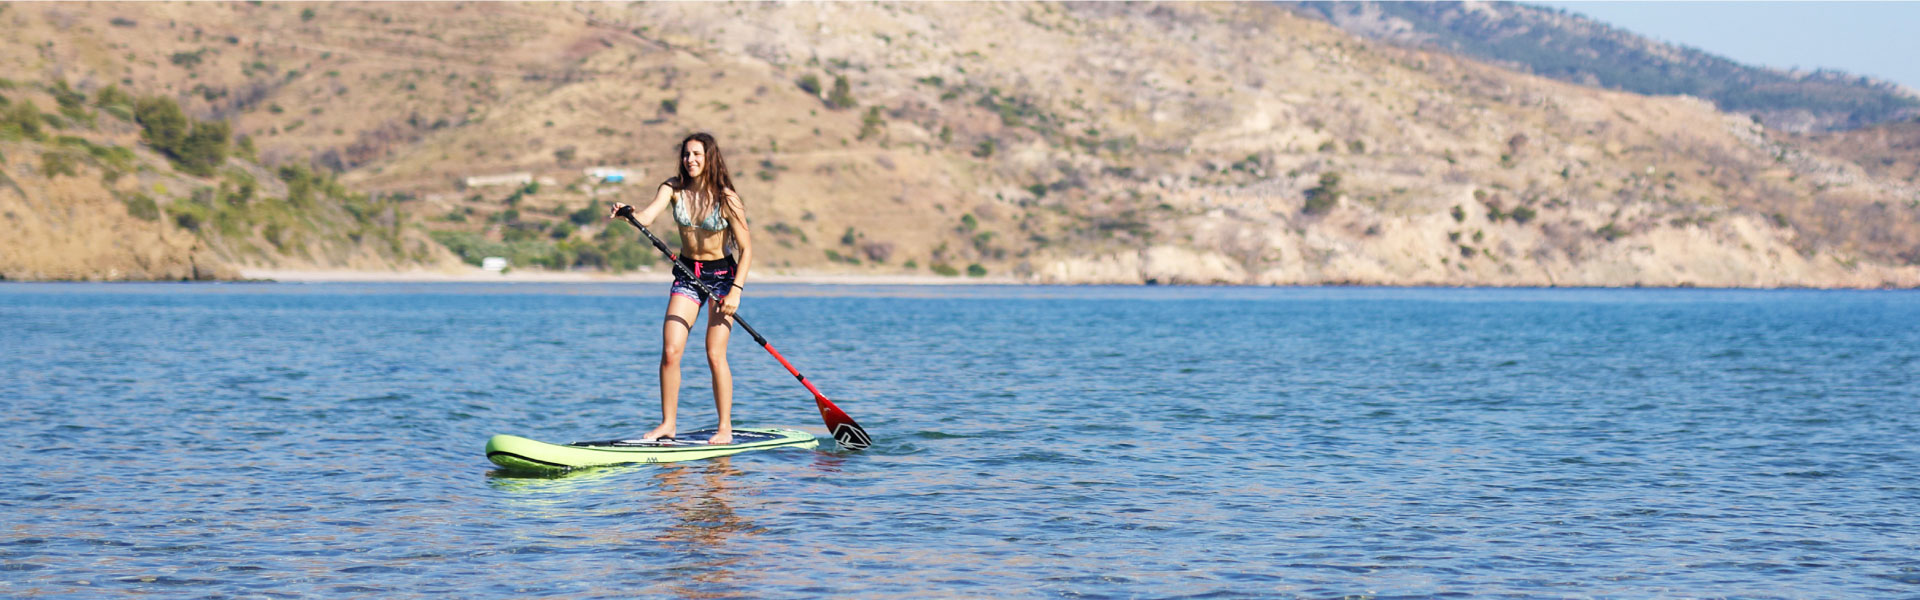 Aqua Marina SUP Breeze